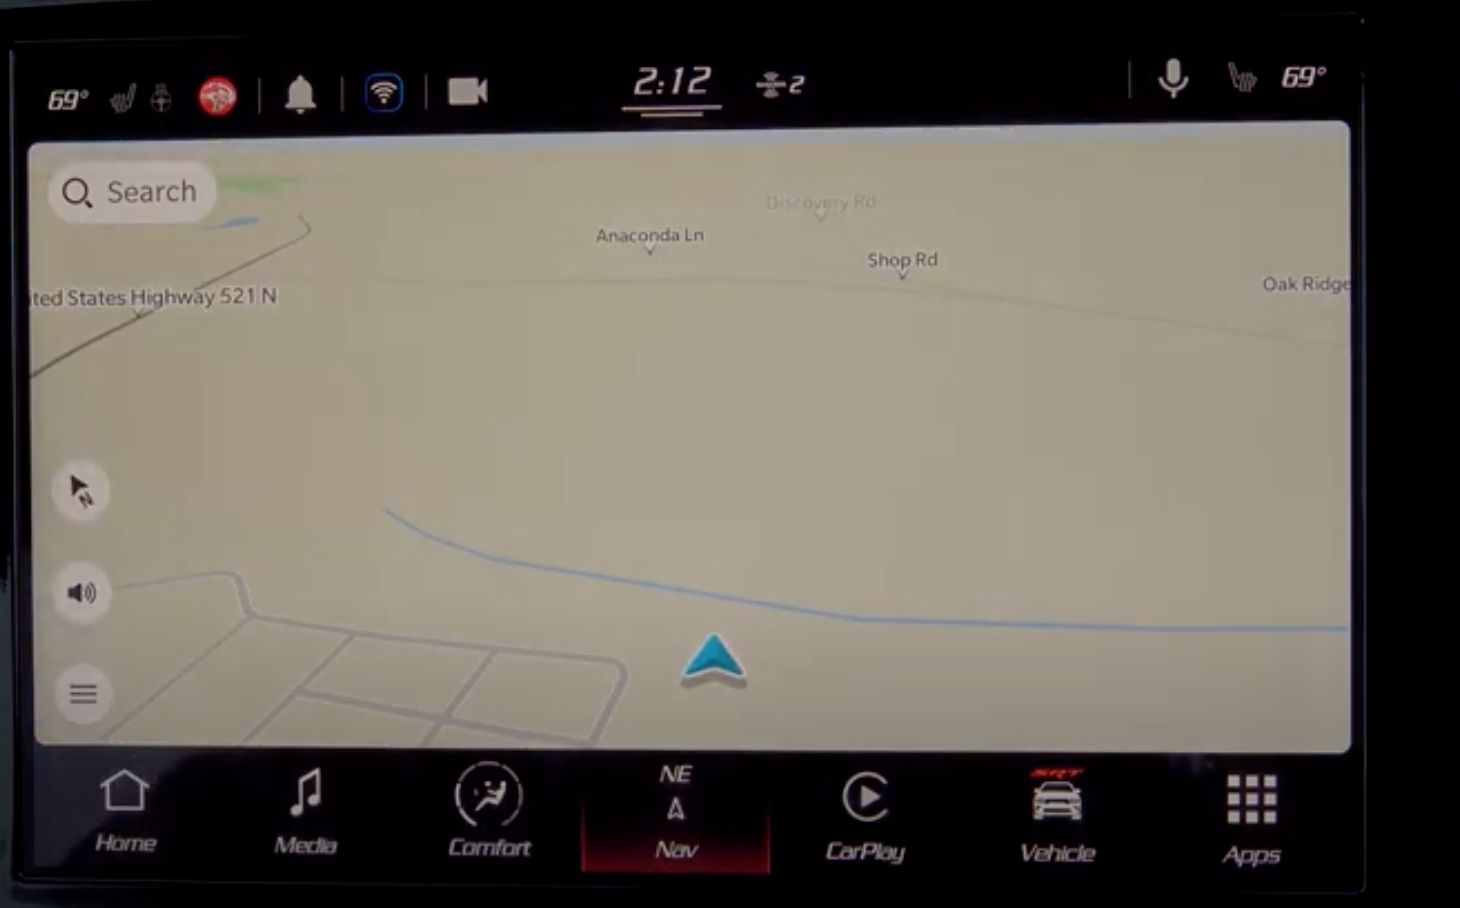 A view of the map in the navigation system of the infotainment display with a blue arrow indicating where a user is